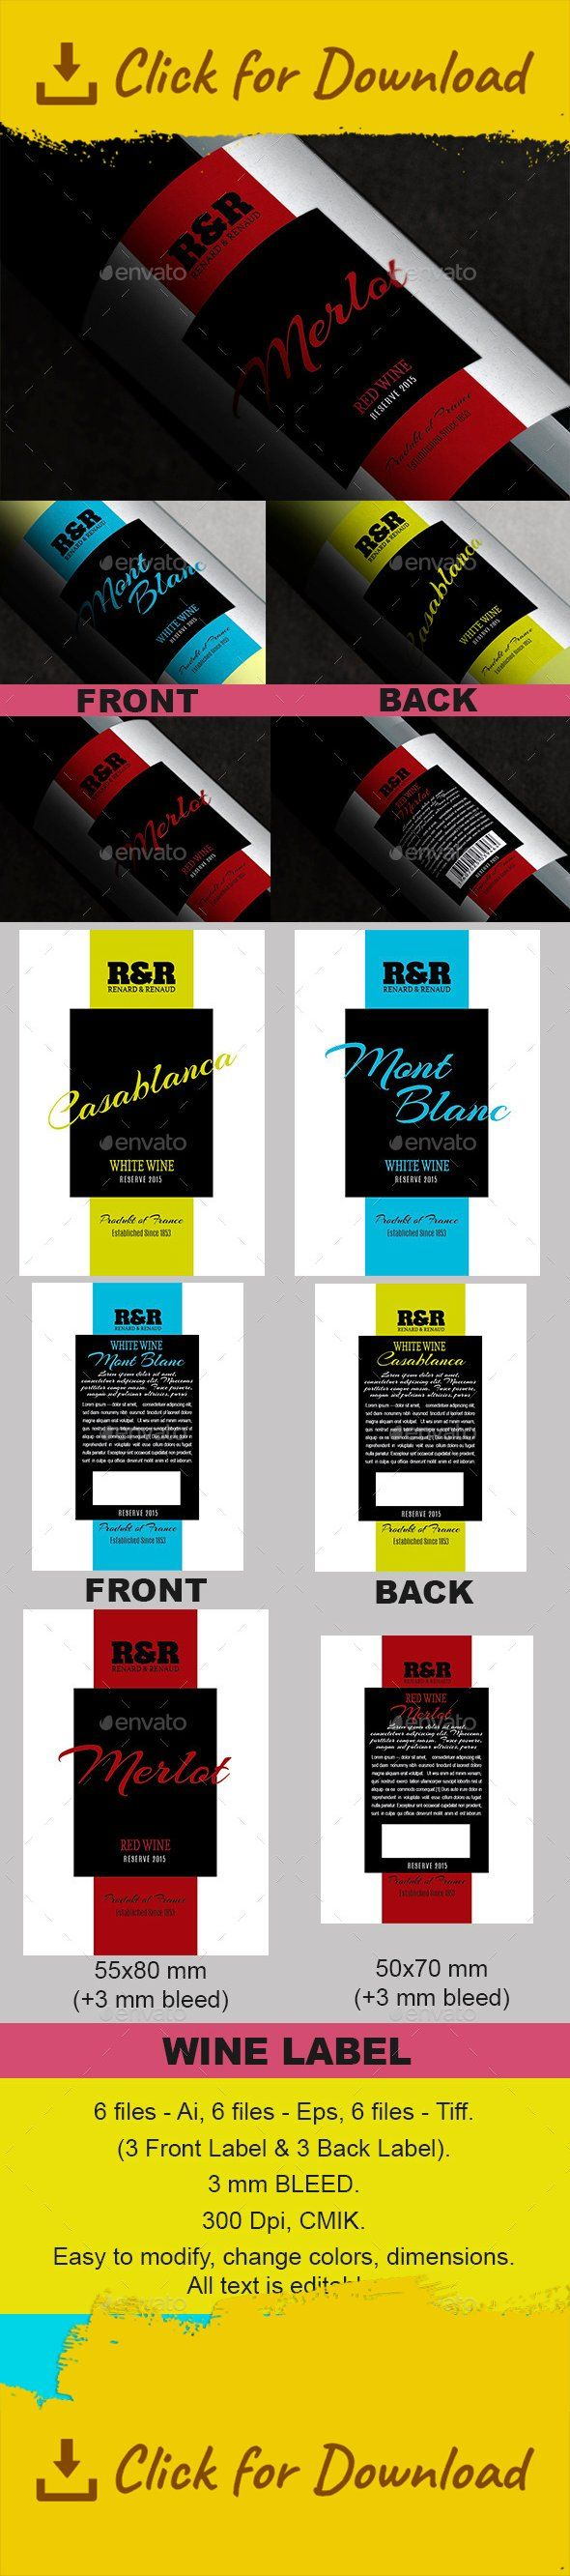 black, blue, bright, design, label, layout, modern, packaging, printing, red, red wine, sticker, template, white, white wine, wine bottle, yellow 6 files – Ai, 6 files – Eps, 6 files – Tiff. (3 Front Label & 3 Back Label).   Dimensions: Front – 55×80 mm (2.4×3.4 inch); Back – 50×70 mm (2.2×3 inch). +3 mm BLEED.   300 Dpi, CMIK.   Easy to modify, change colors, dimensions. All text is editable.   All fonts used are free: Arizonia &#82...